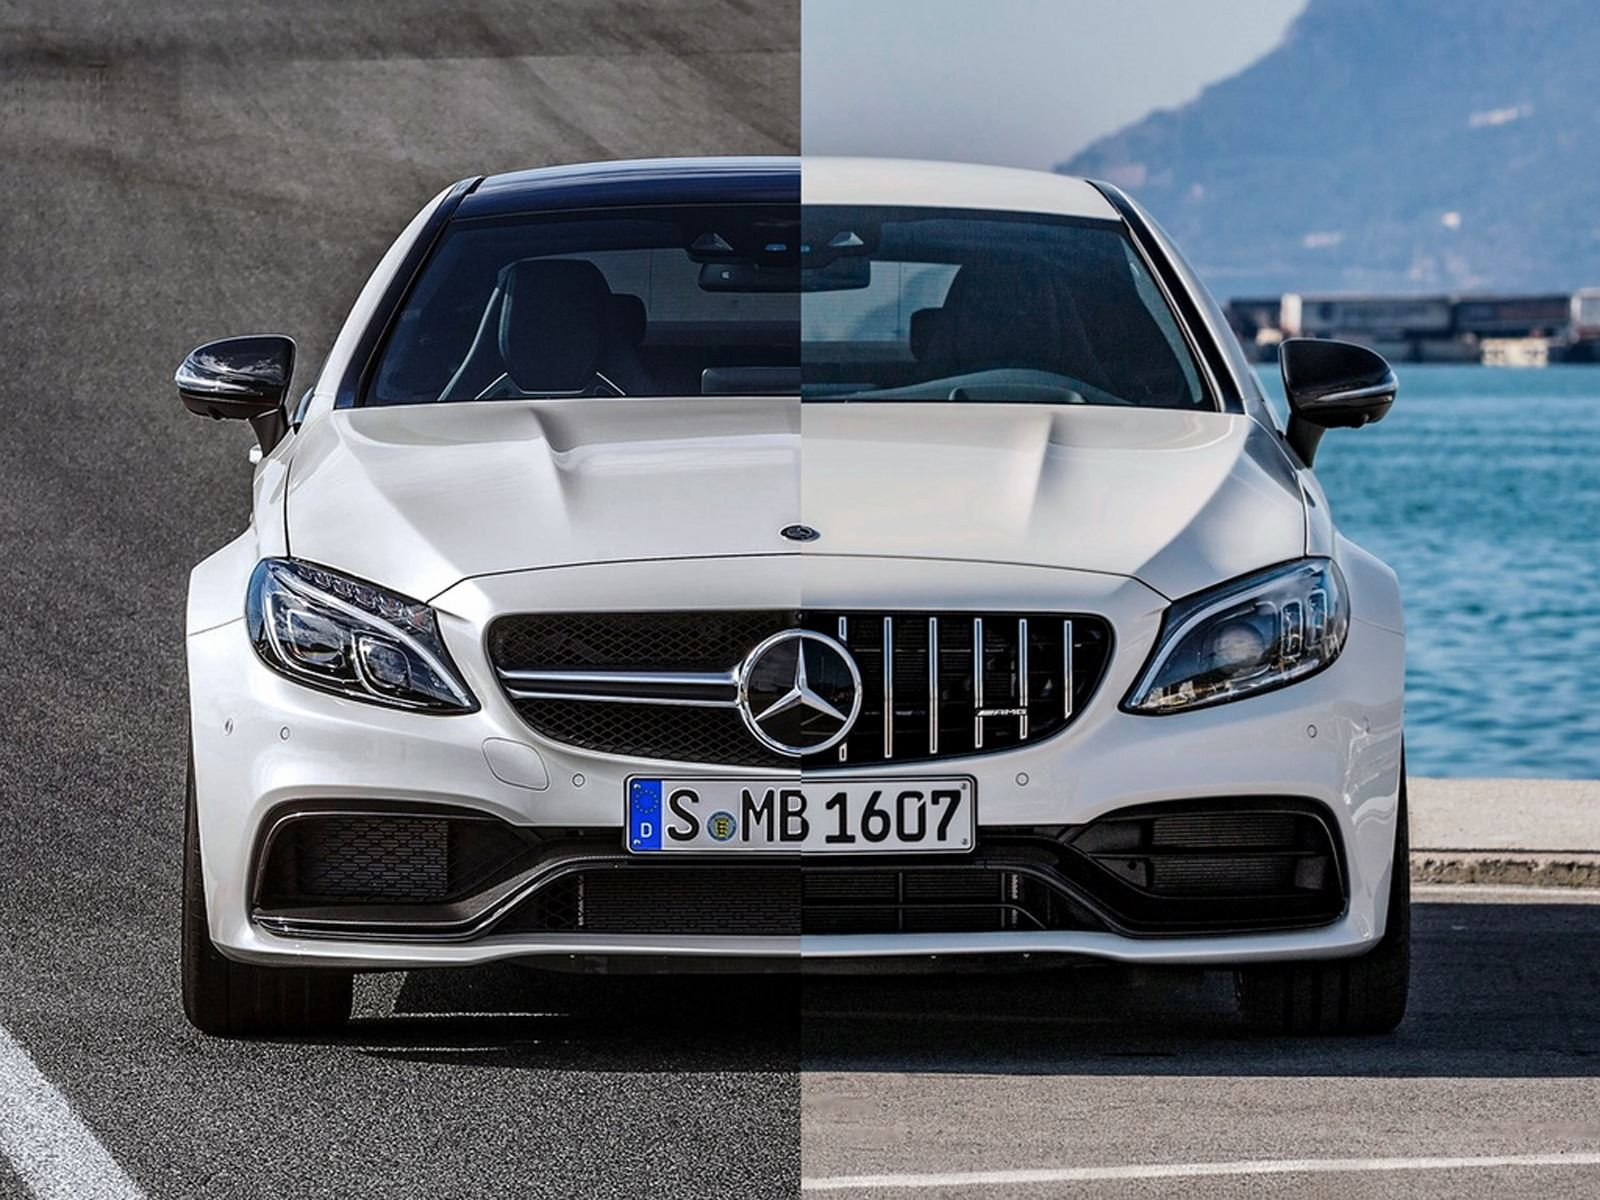 2018 Vs 2019 Mercedes Amg C63 Here S What S New Carbuzz